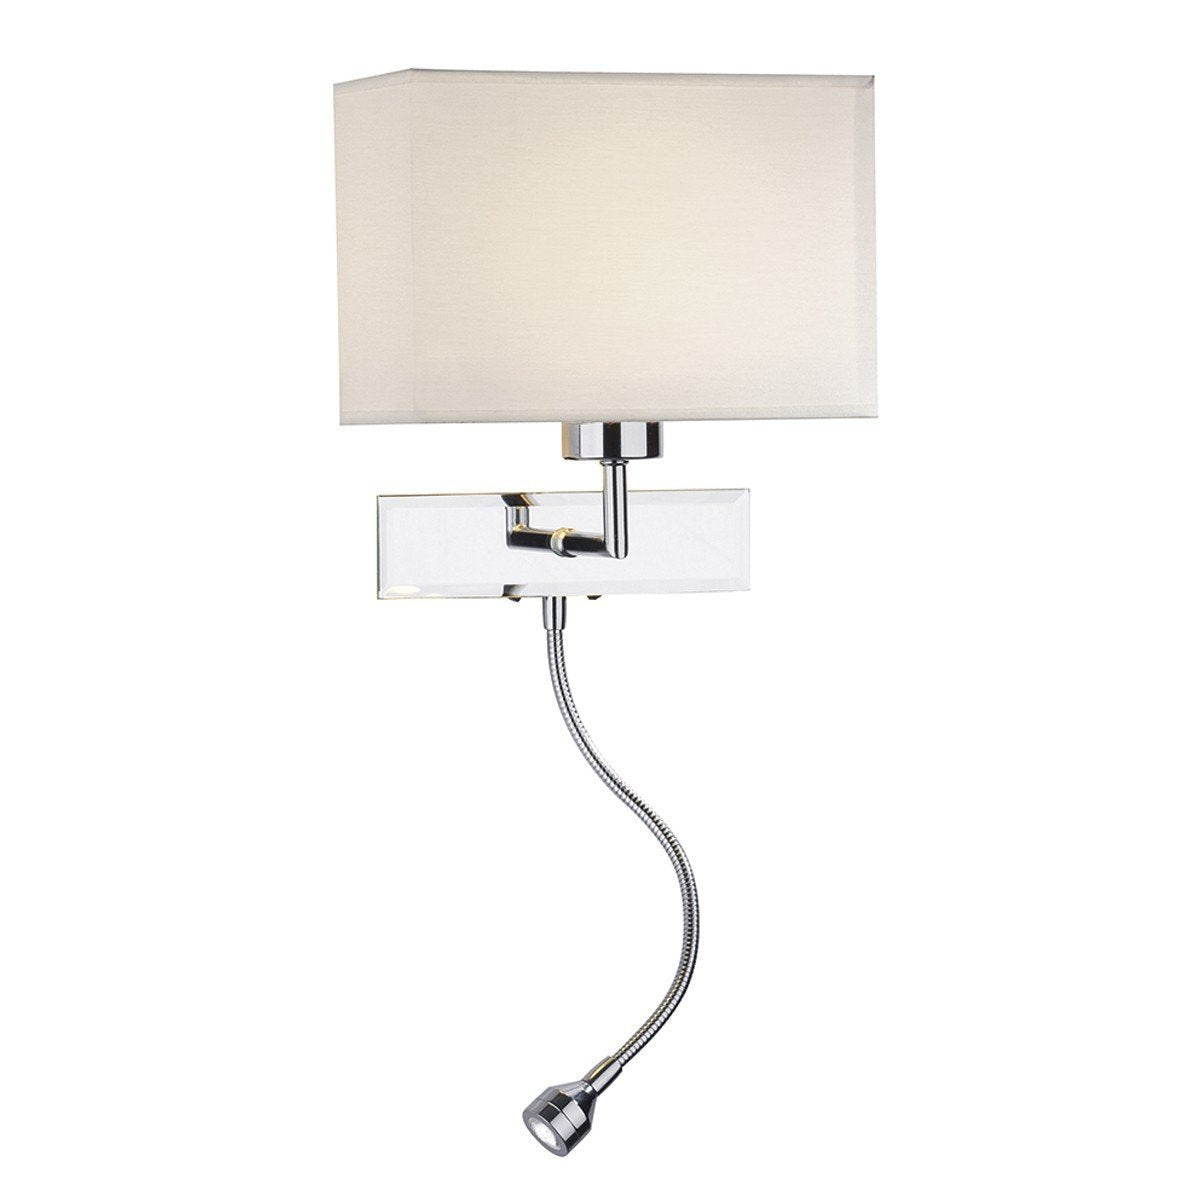 Amalfi Polished Chrome Wall Light - London Lighting - 1